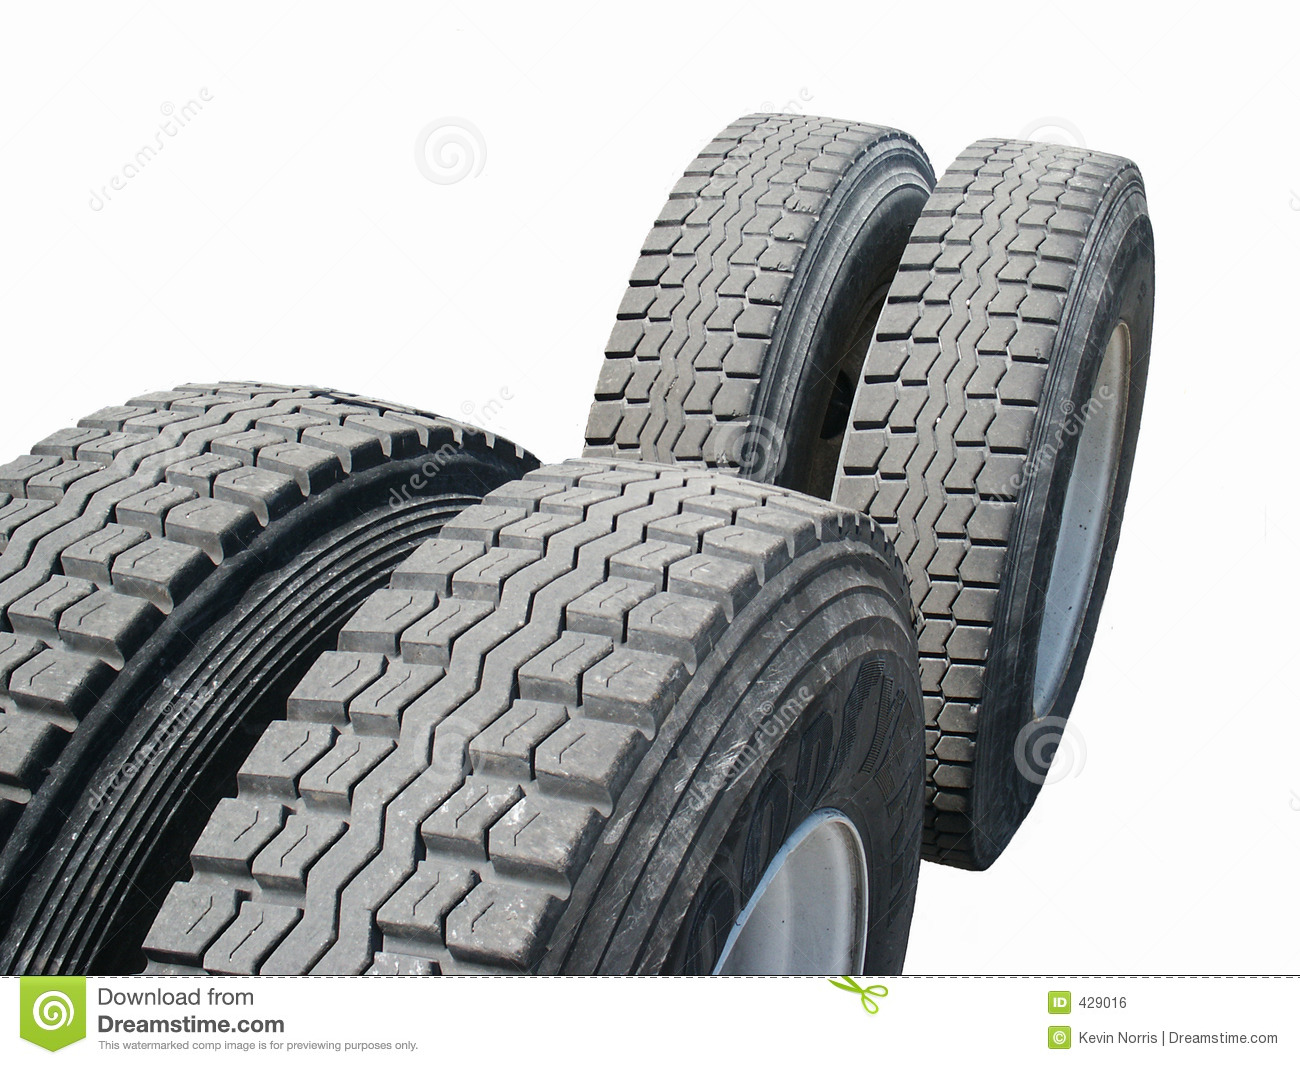 Highway Auto & Light Truck Tire Replacement Limited Warranty